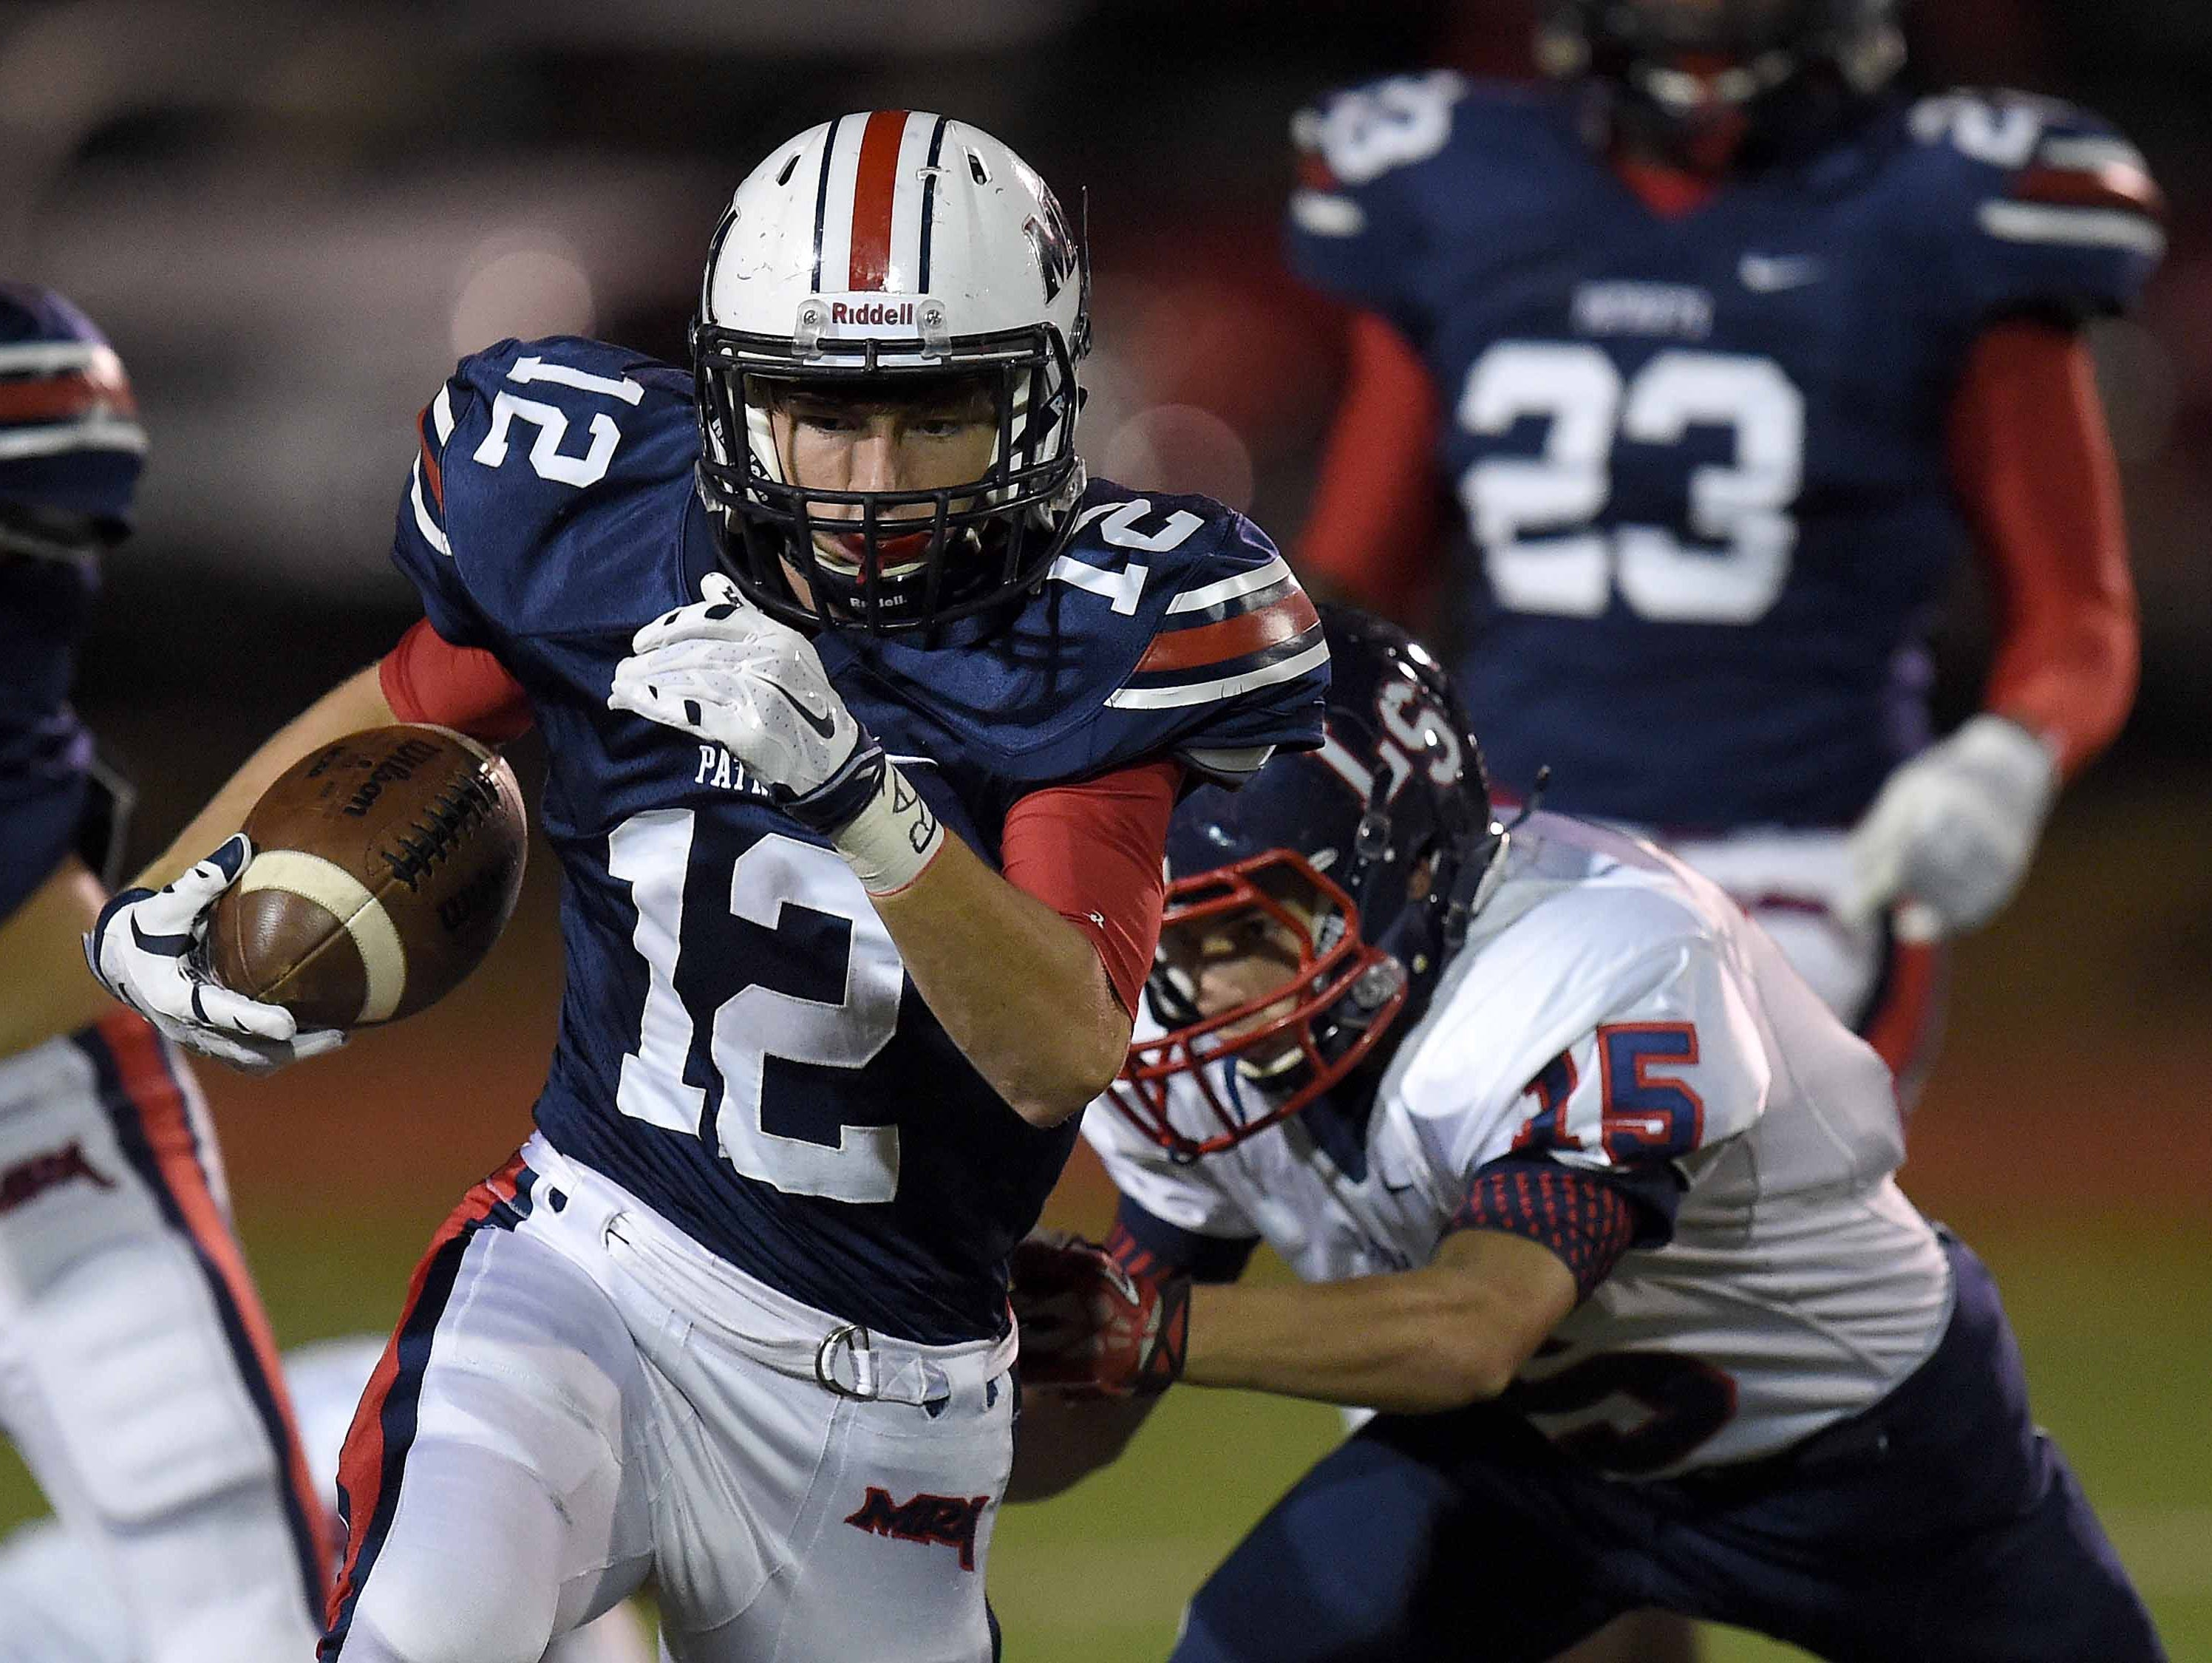 MRA's Kory Stephens (12) returns a kick getting past Lamar's Branson Acton (15) on Friday, October 30, 2015, at Madison-Ridgeland Academy in Madison, Miss.